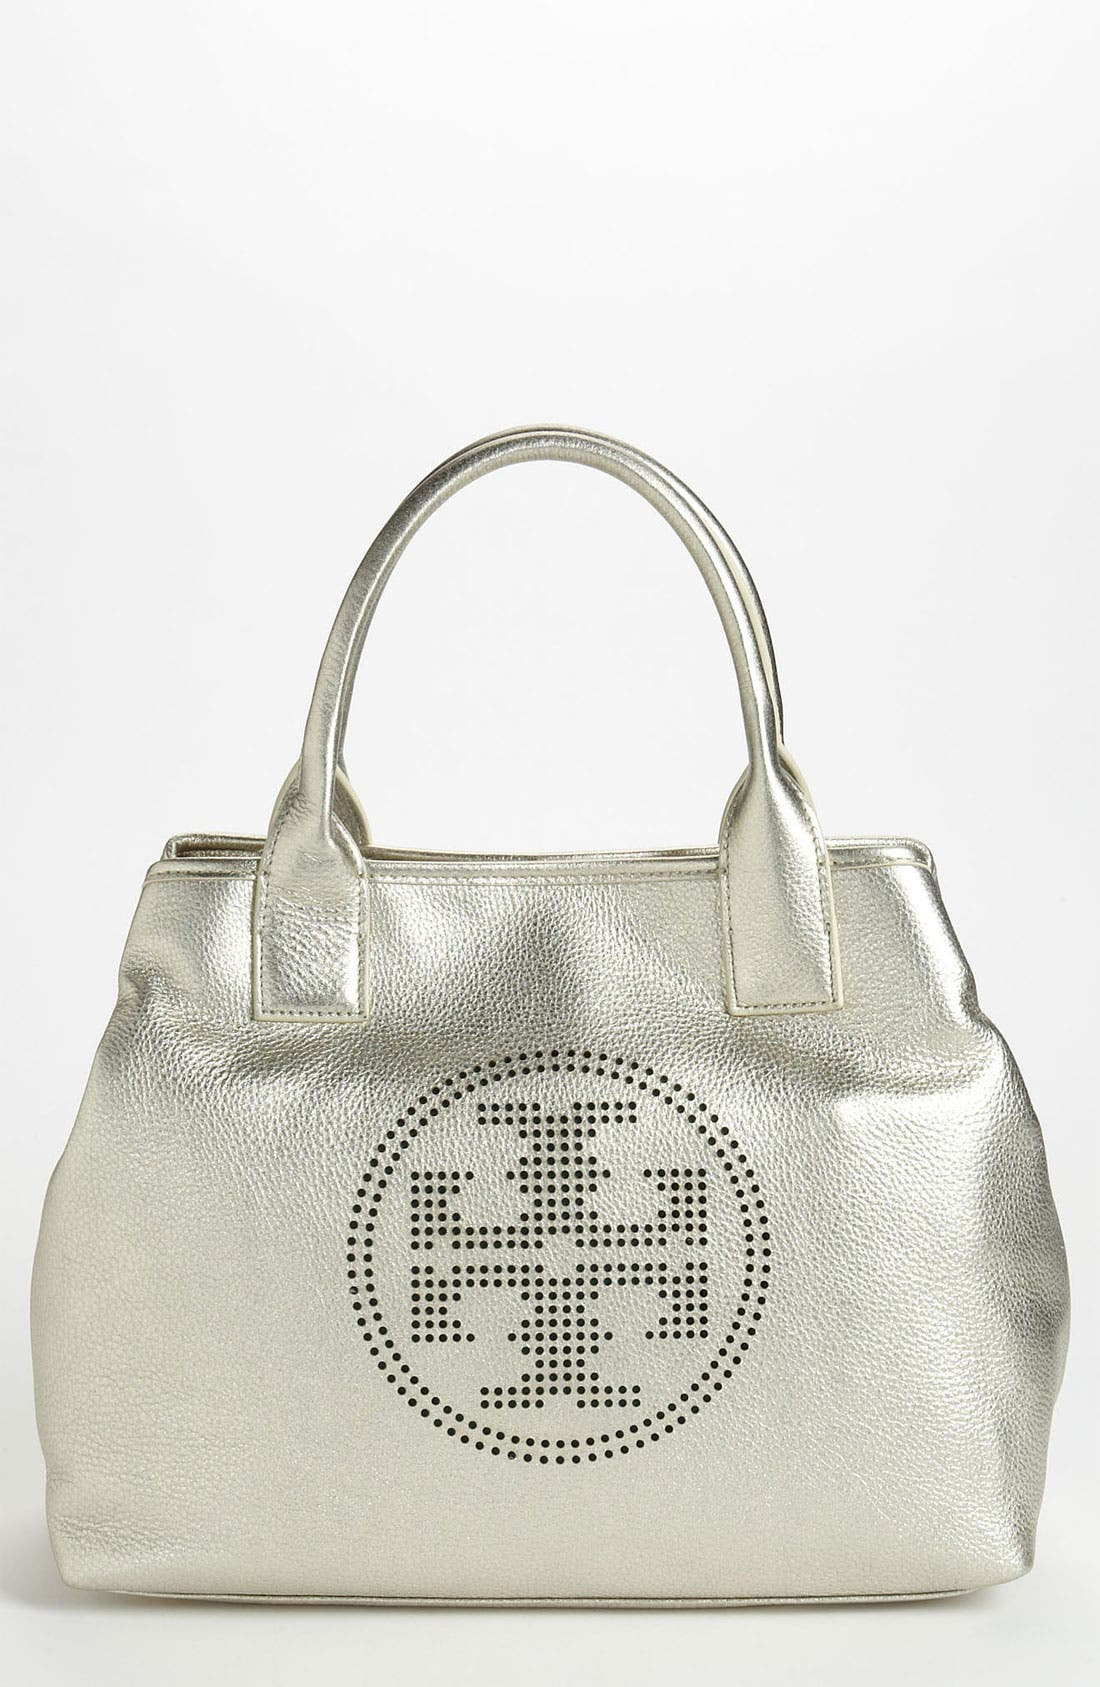 Main Image - Tory Burch 'Small' Perforated Logo Metallic Classic Tote